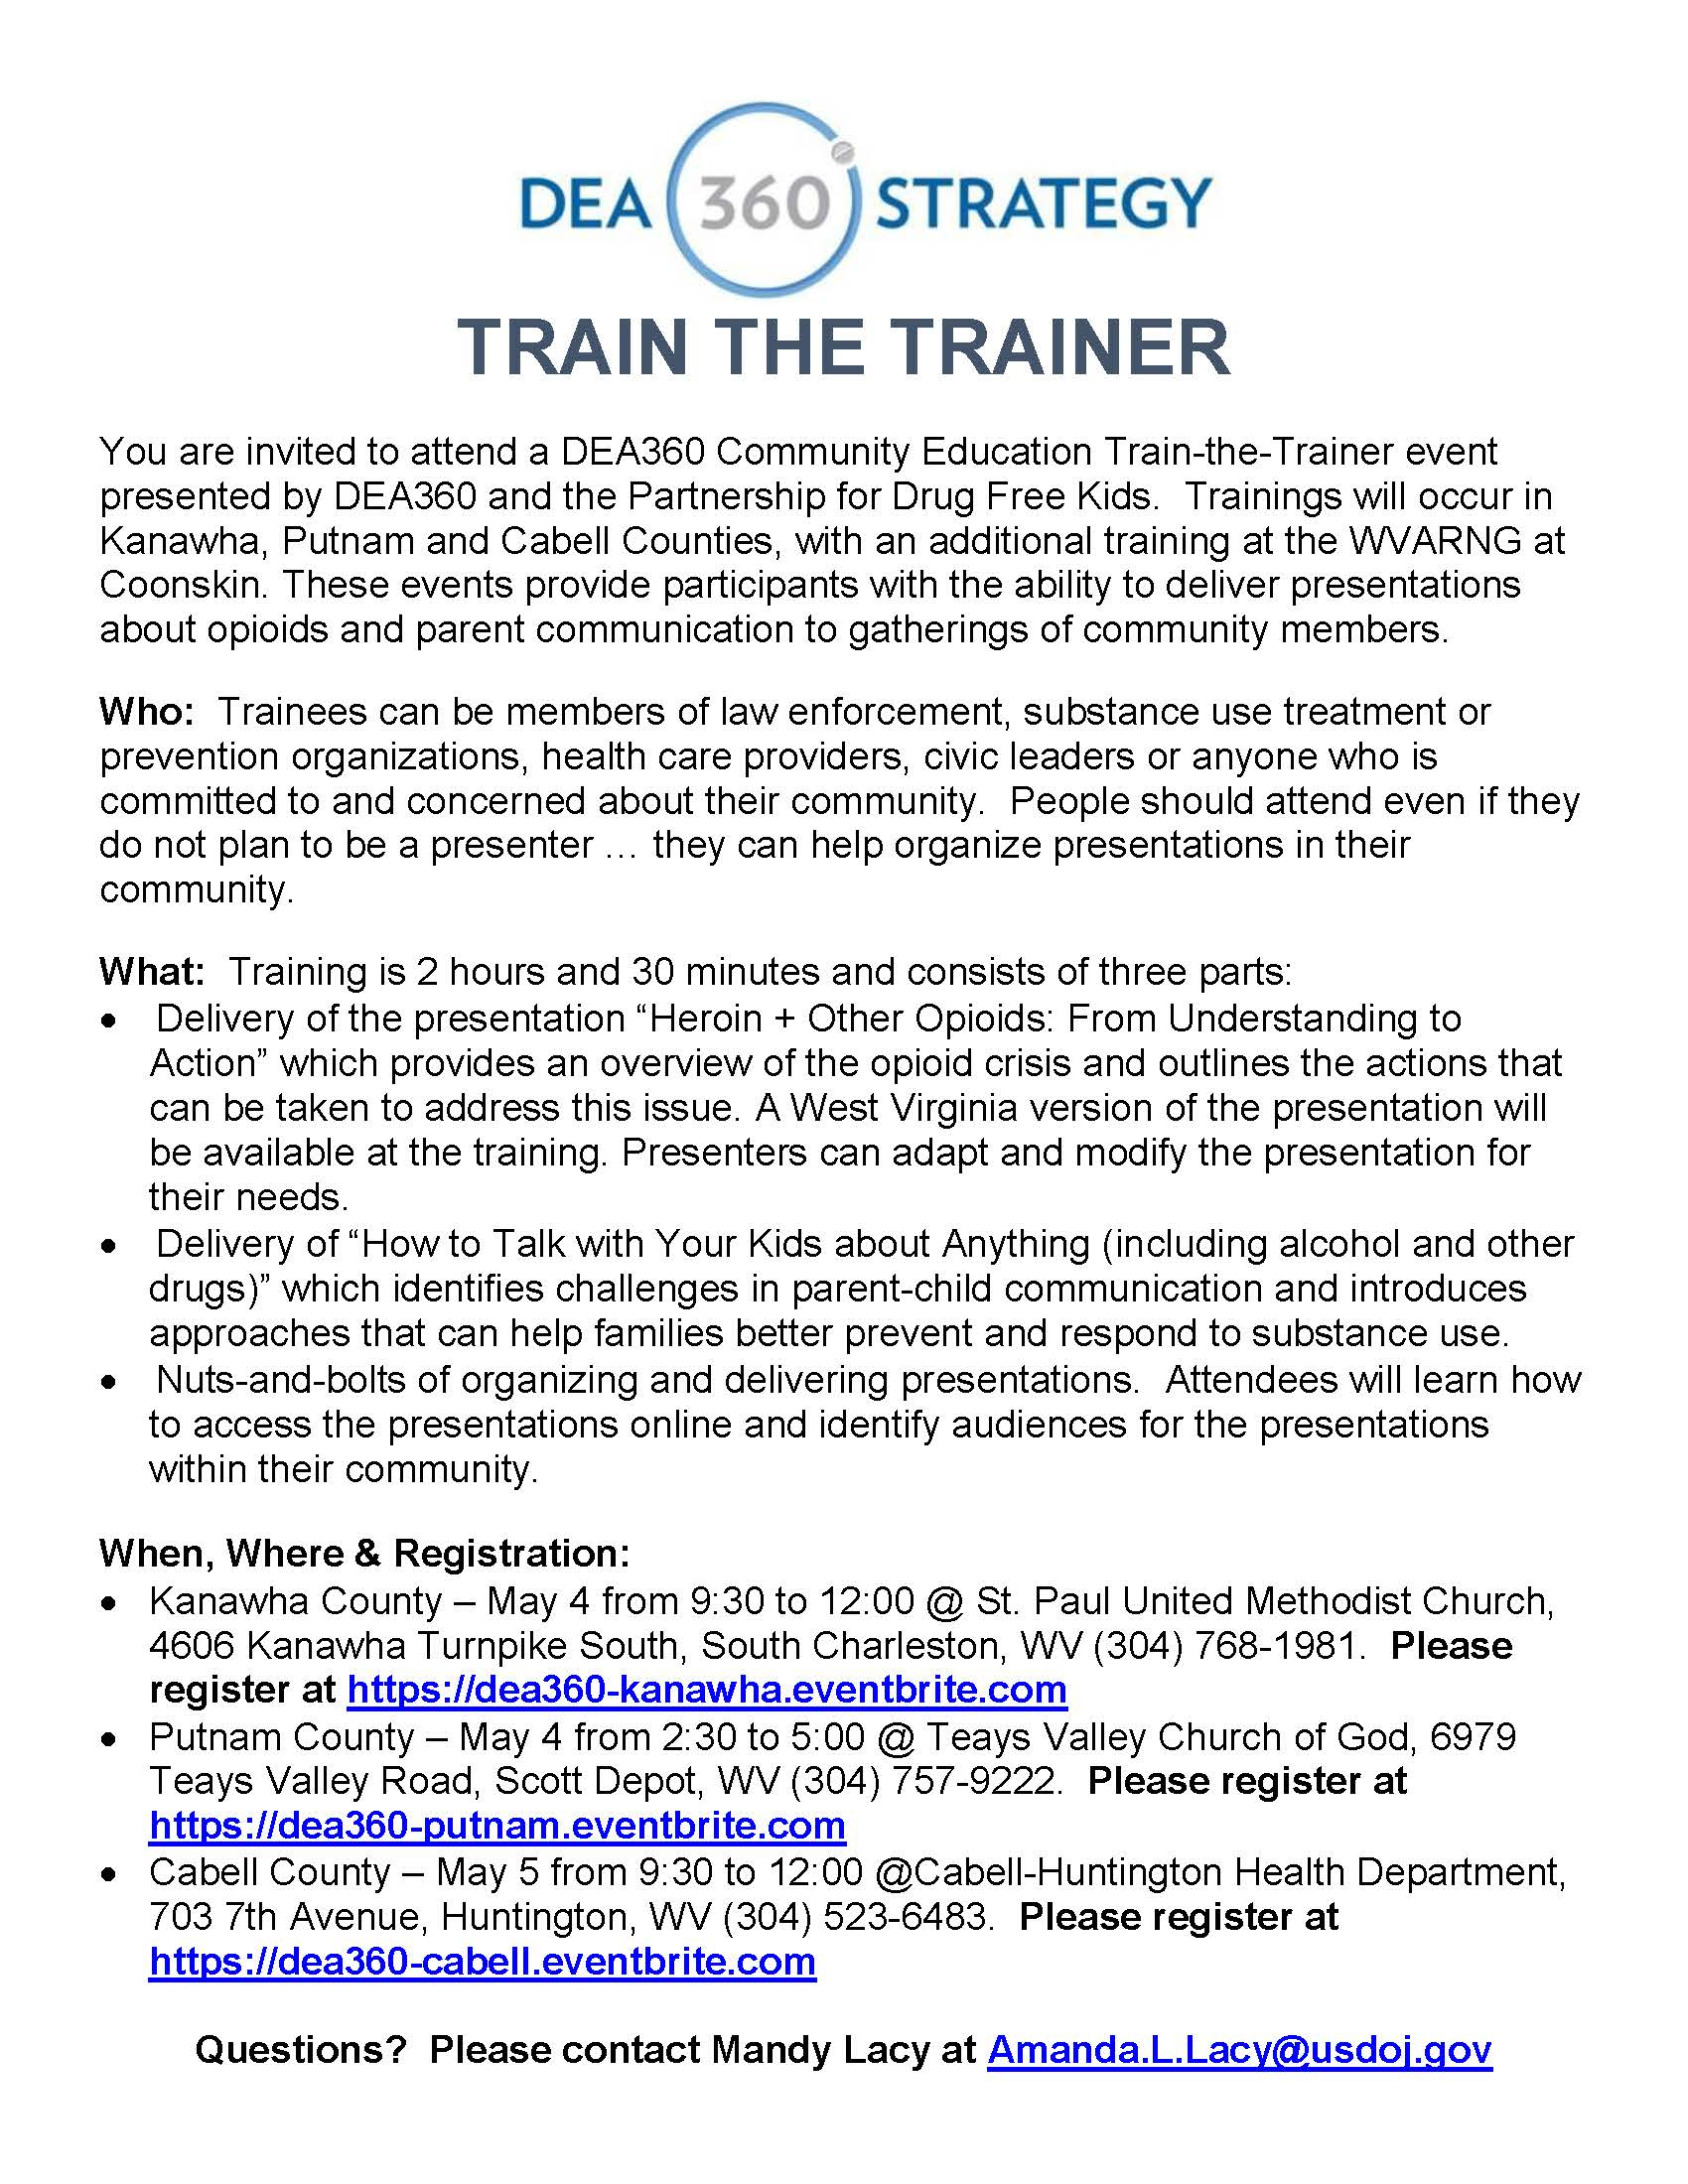 DEA 360 Train the Trainer – May 5 in Cabell County